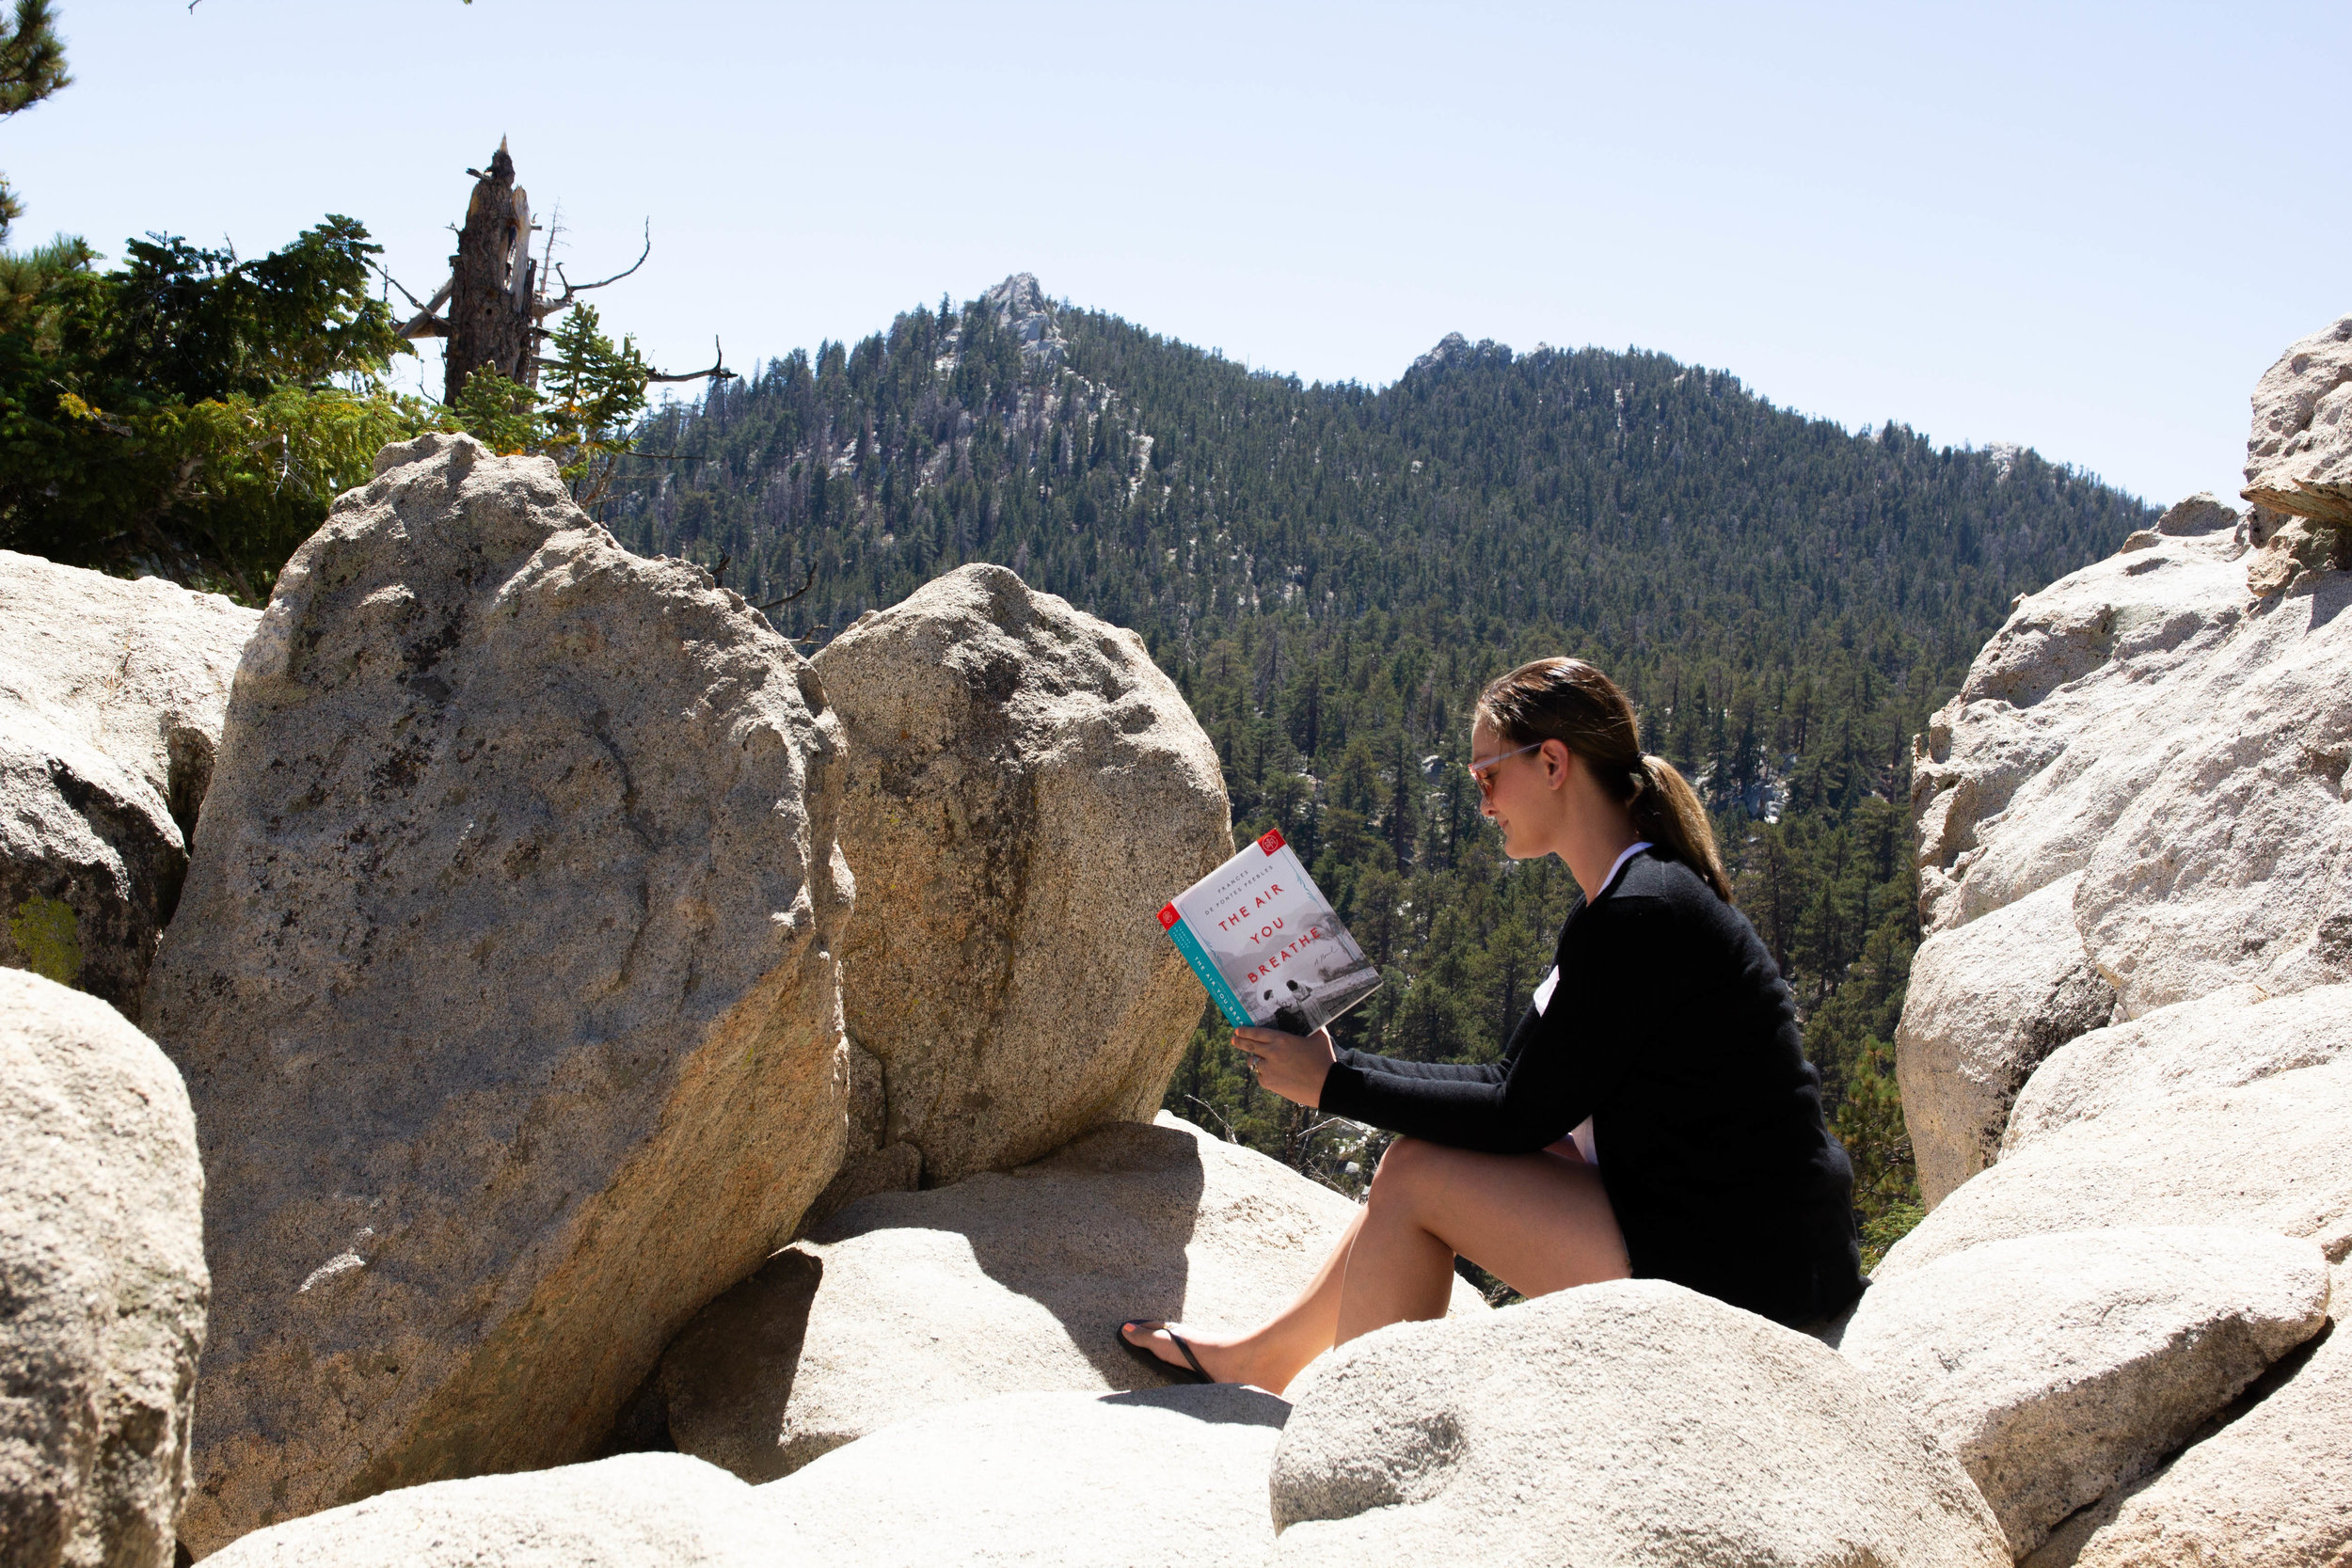 Reading The Air You Breathe by Frances de Pontes Peebles at Mount San Jacinto State Park in Palm Springs, CA